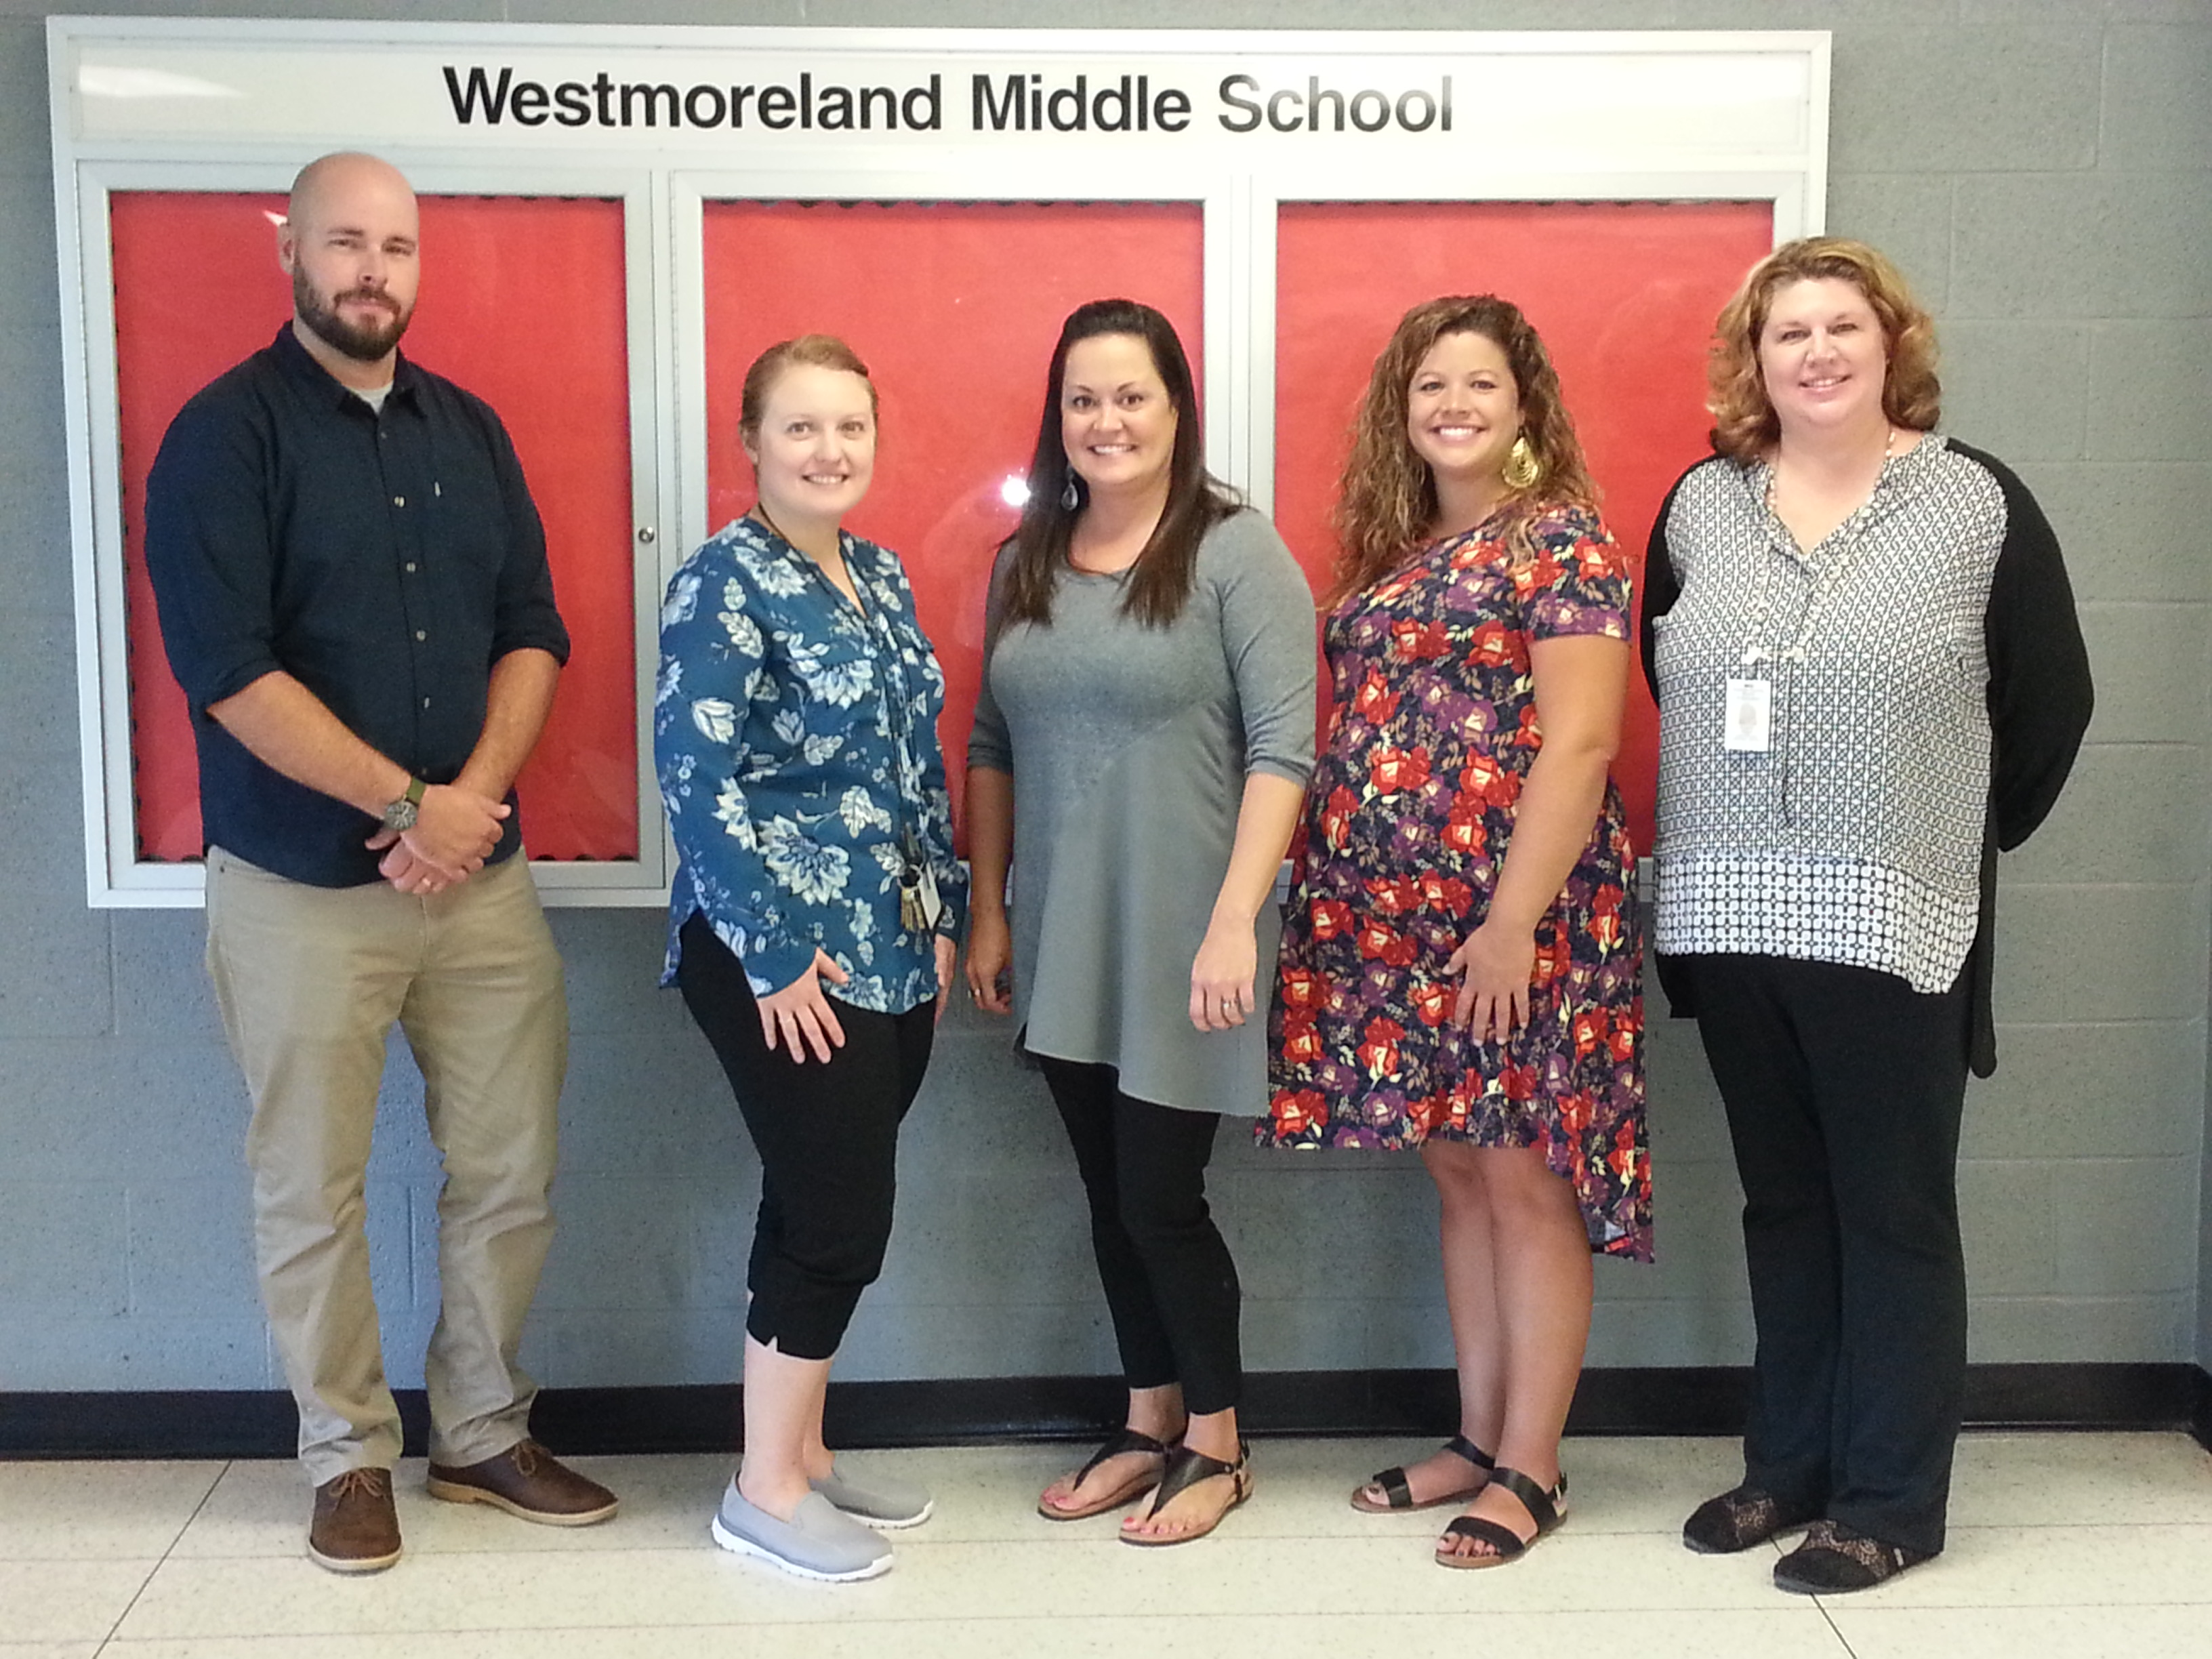 New Staffulty At WMS ... Johnathan Petersen--6th grade social studies, Lauren Werbowsky--Gifted Itinerent Teacher, Leigh Potts--6th grade math, Natalie Patterson--school nurse, and Angela Nagel--Lead Educator.  (09/11)